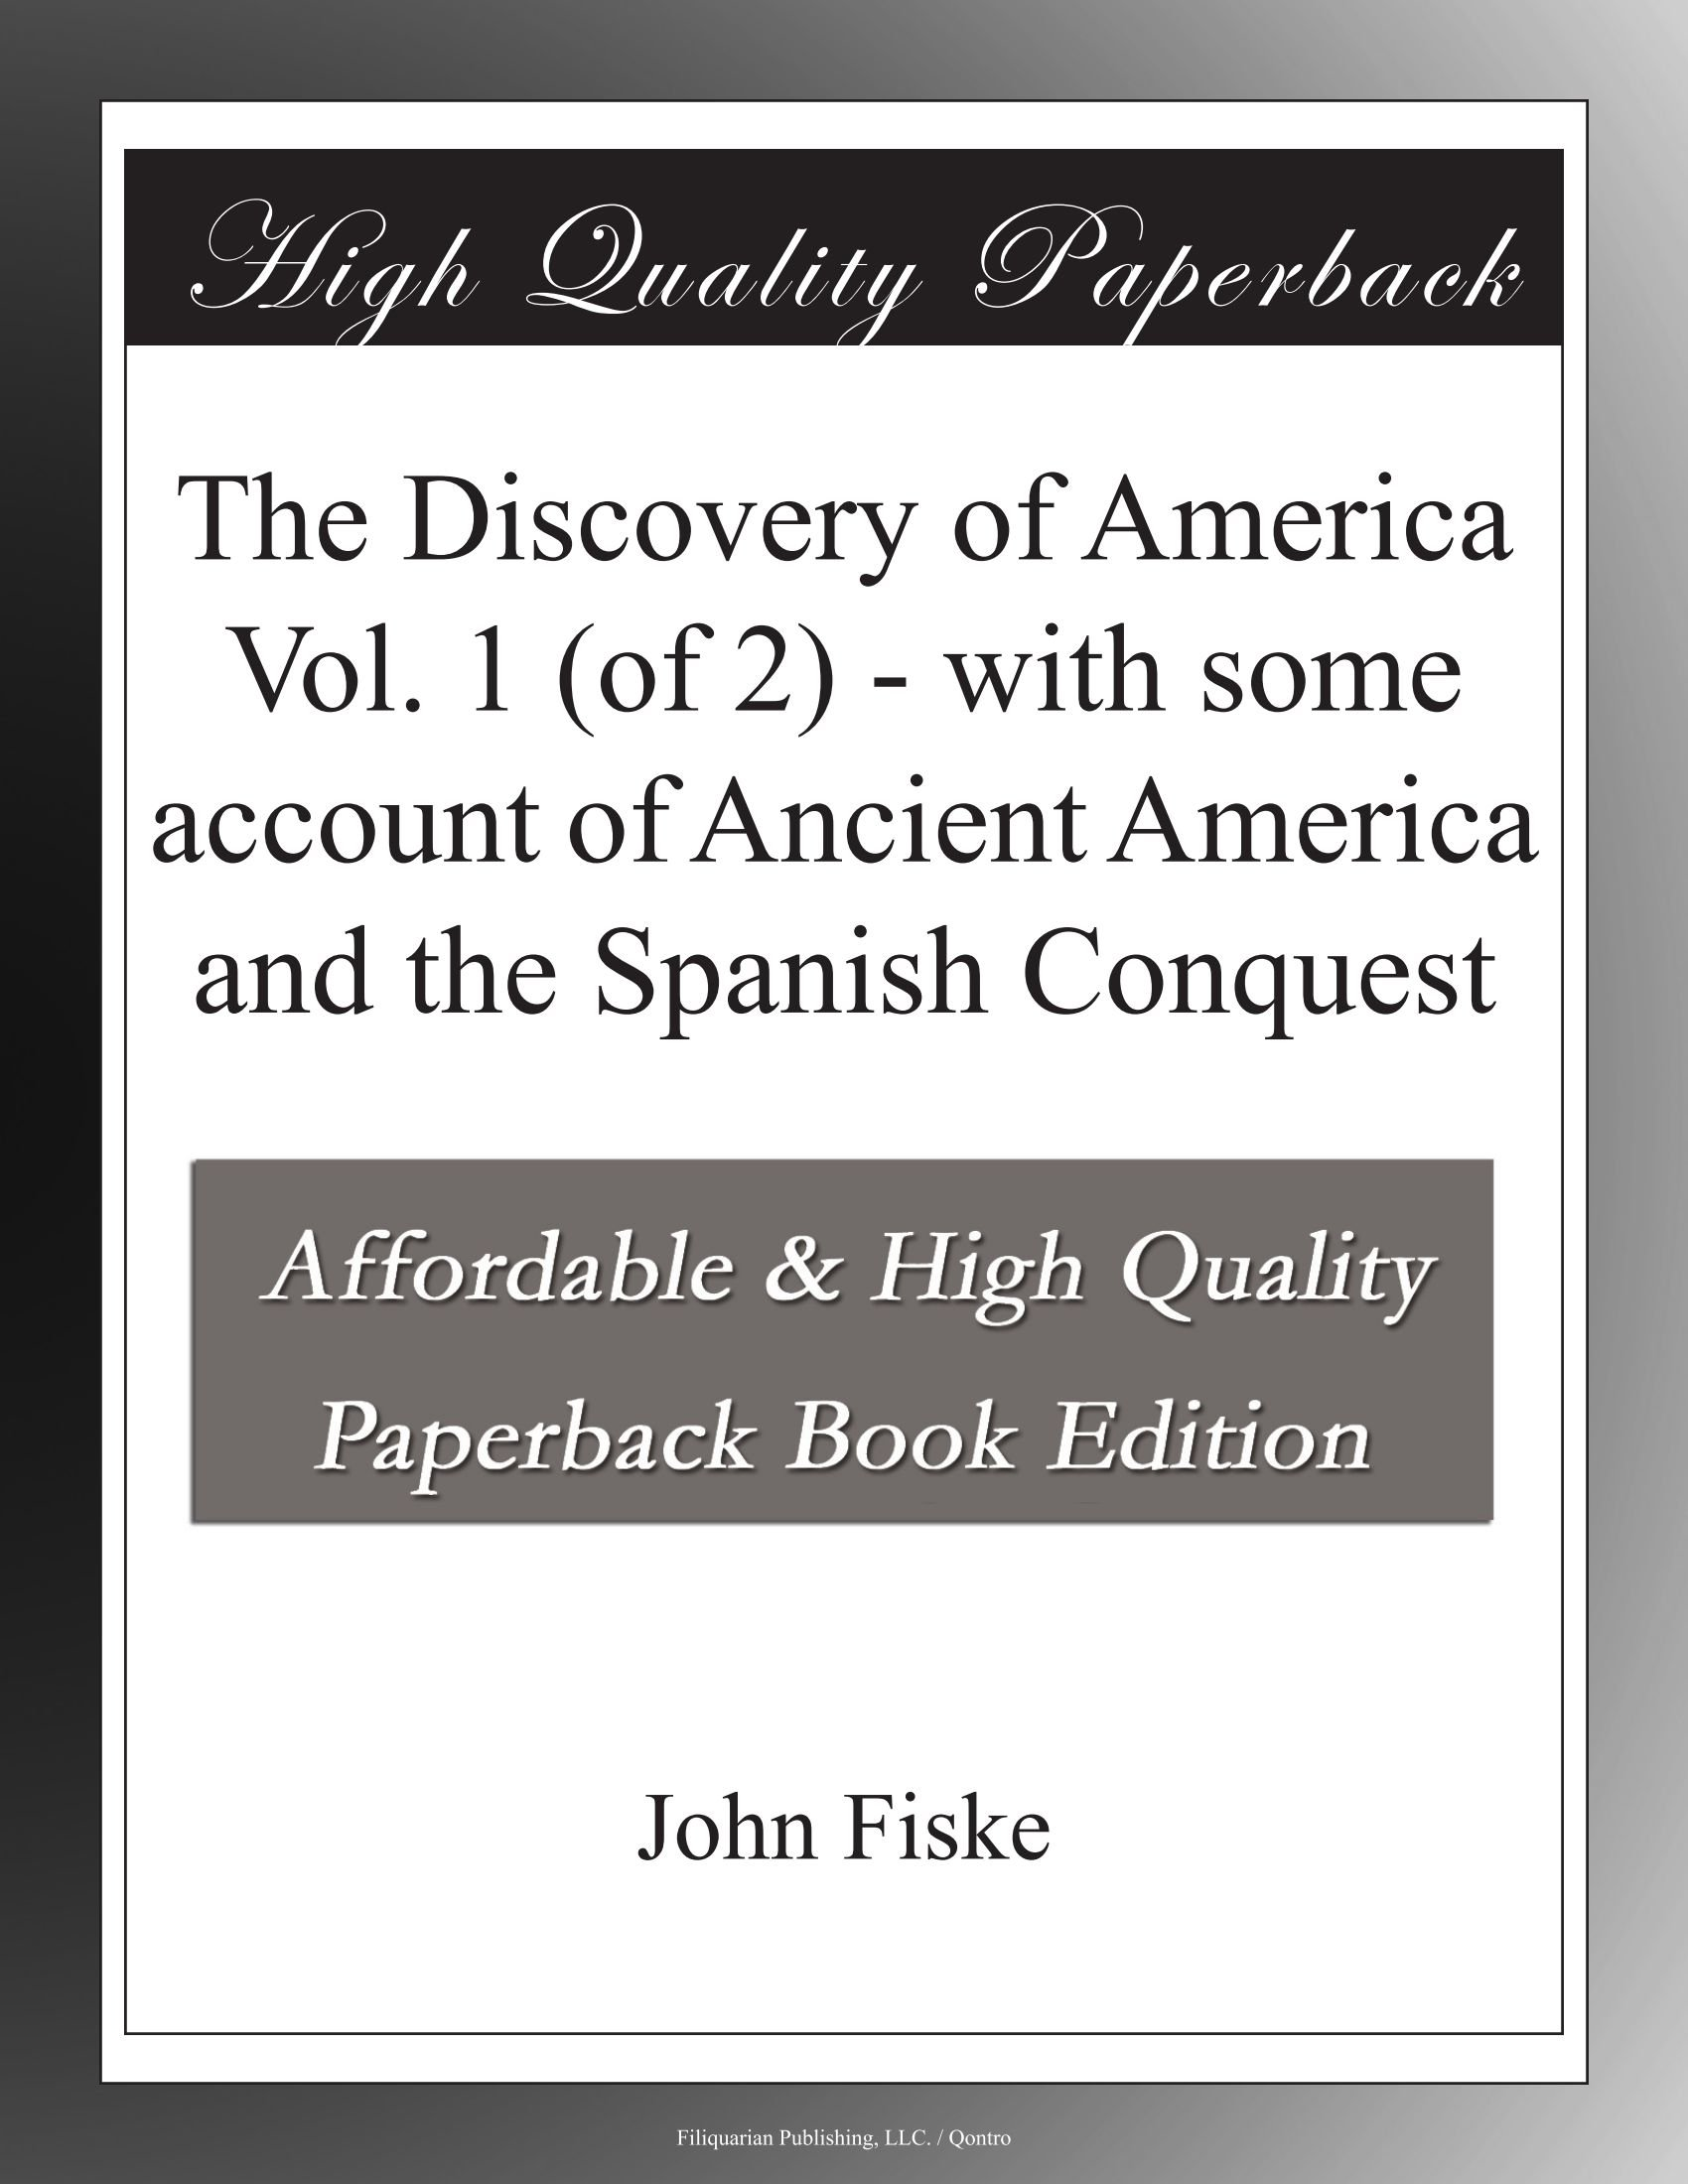 The Discovery of America Vol. 1 (of 2) - with some account of Ancient America and the Spanish Conquest pdf